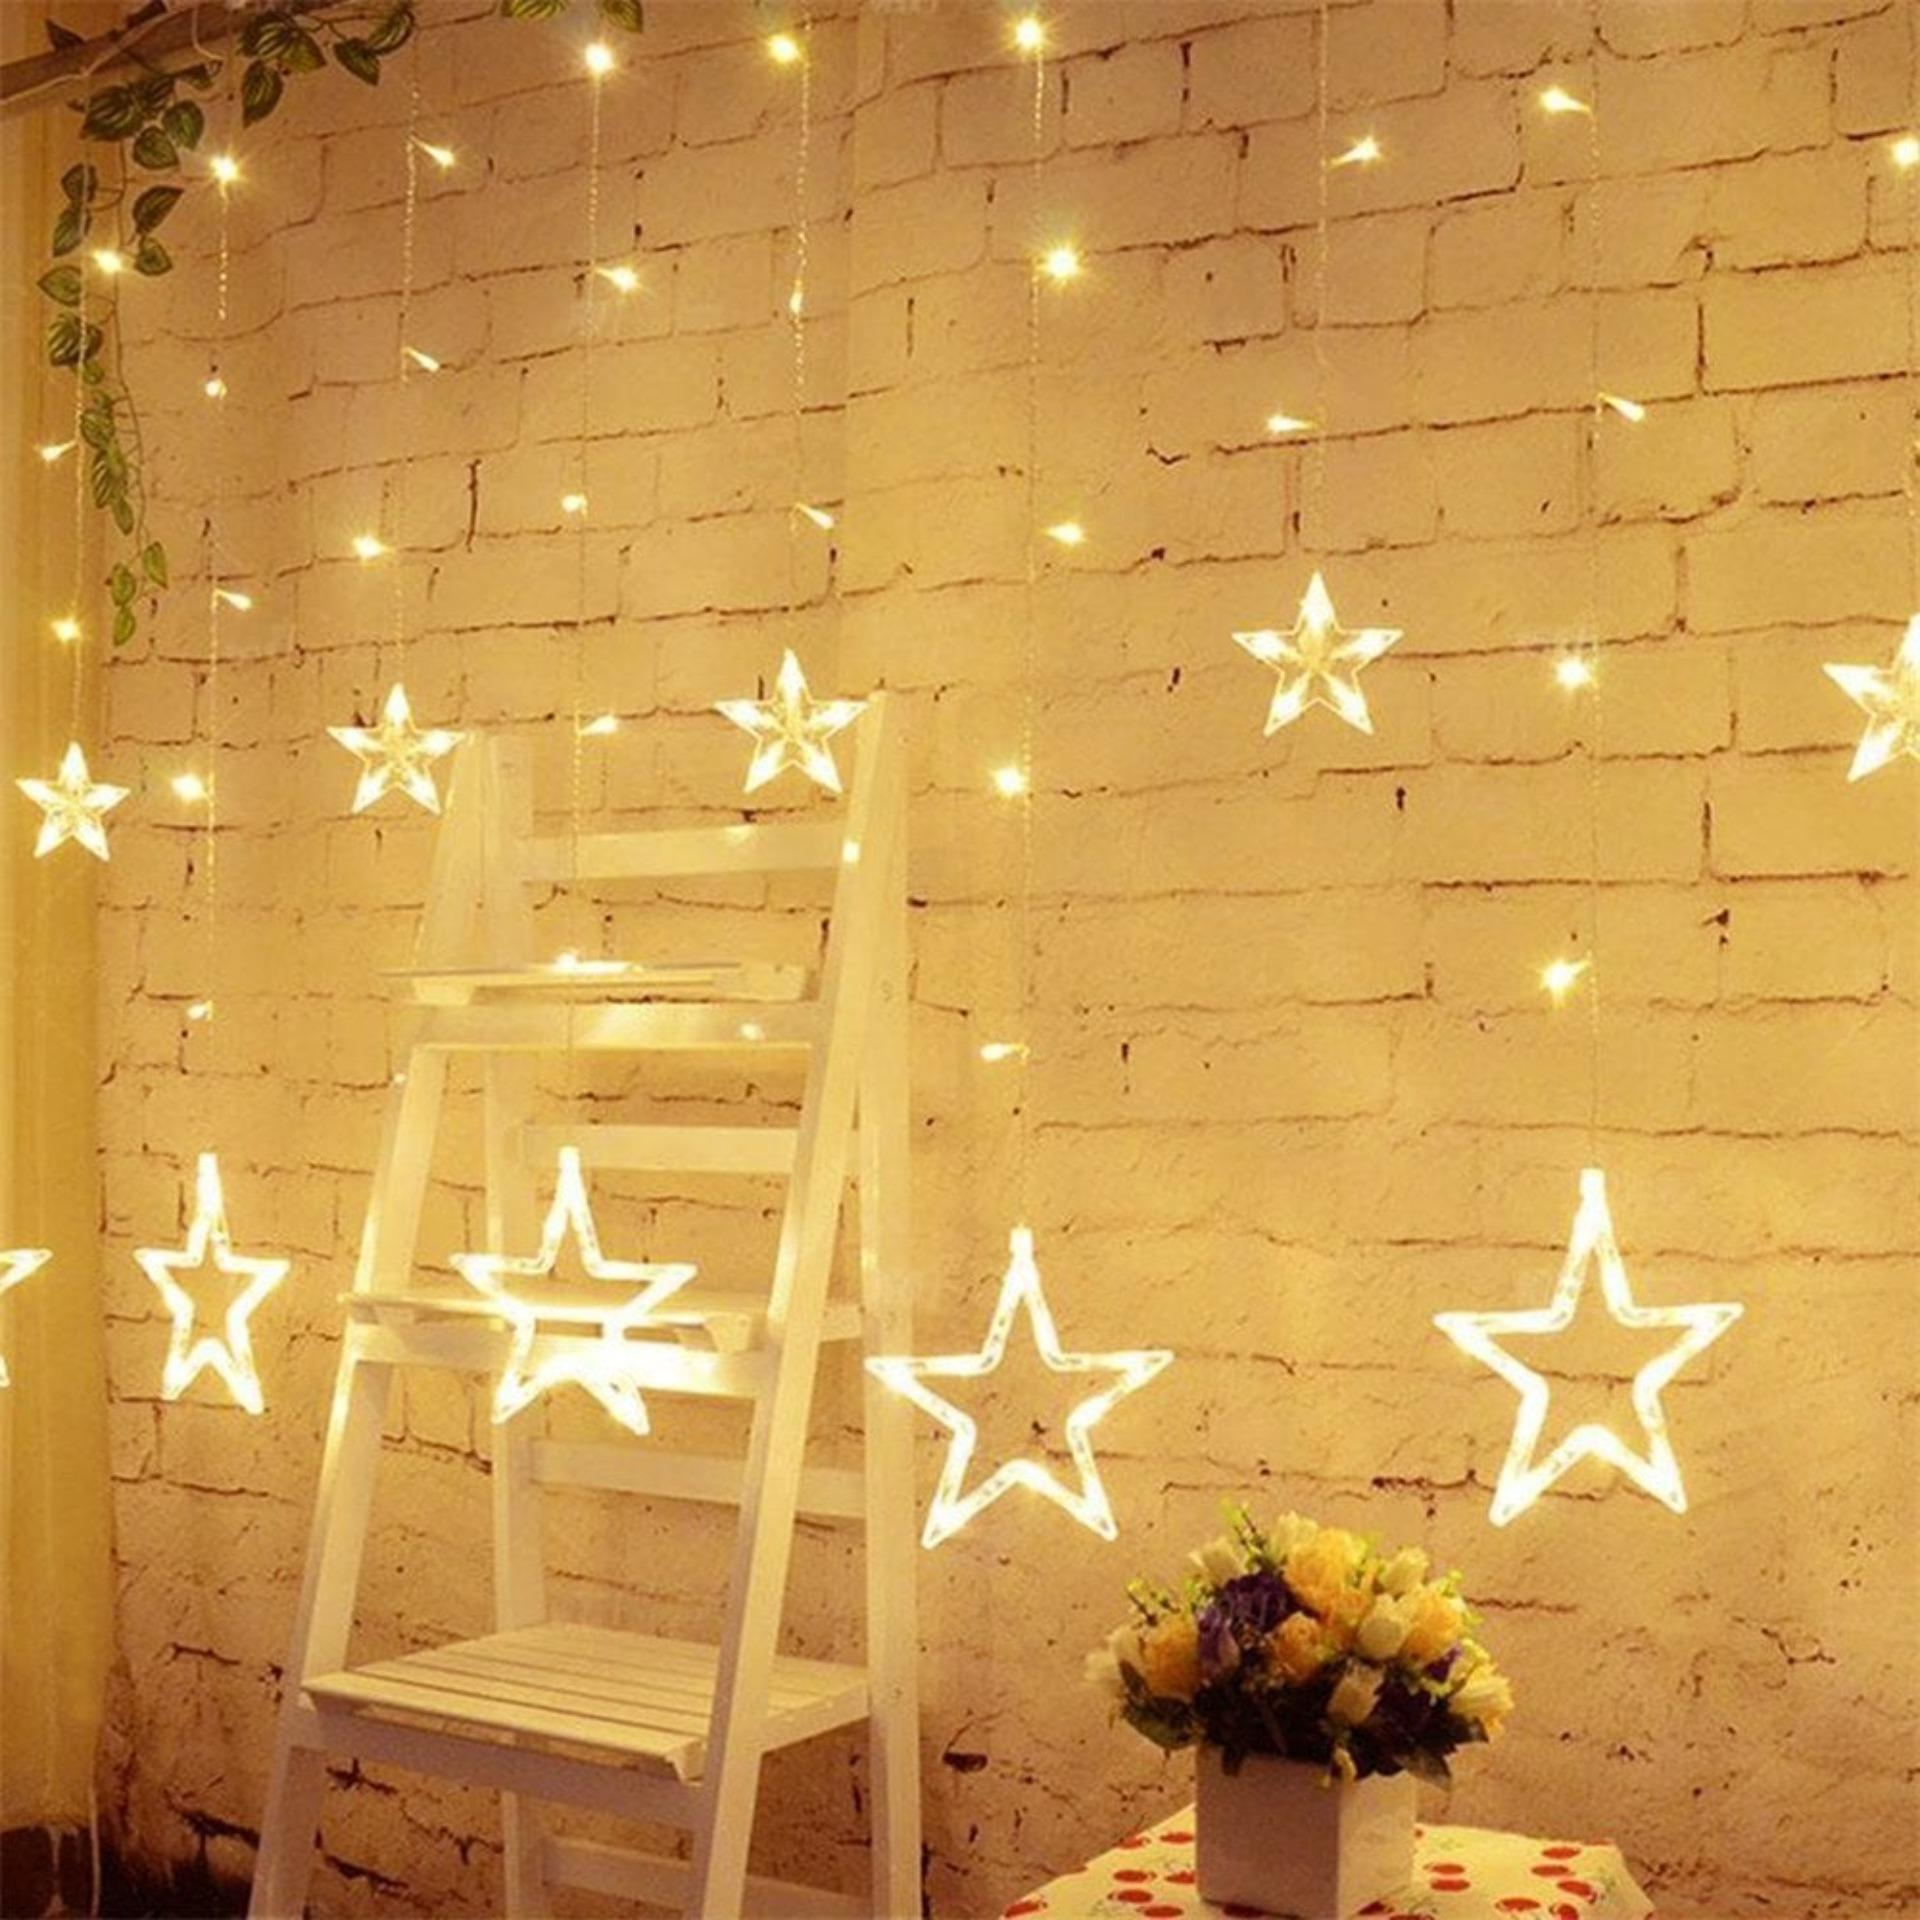 [StarzDeals]  - 3 Meters 12 Stars 138 Led Curtain Lights ( Power Point )